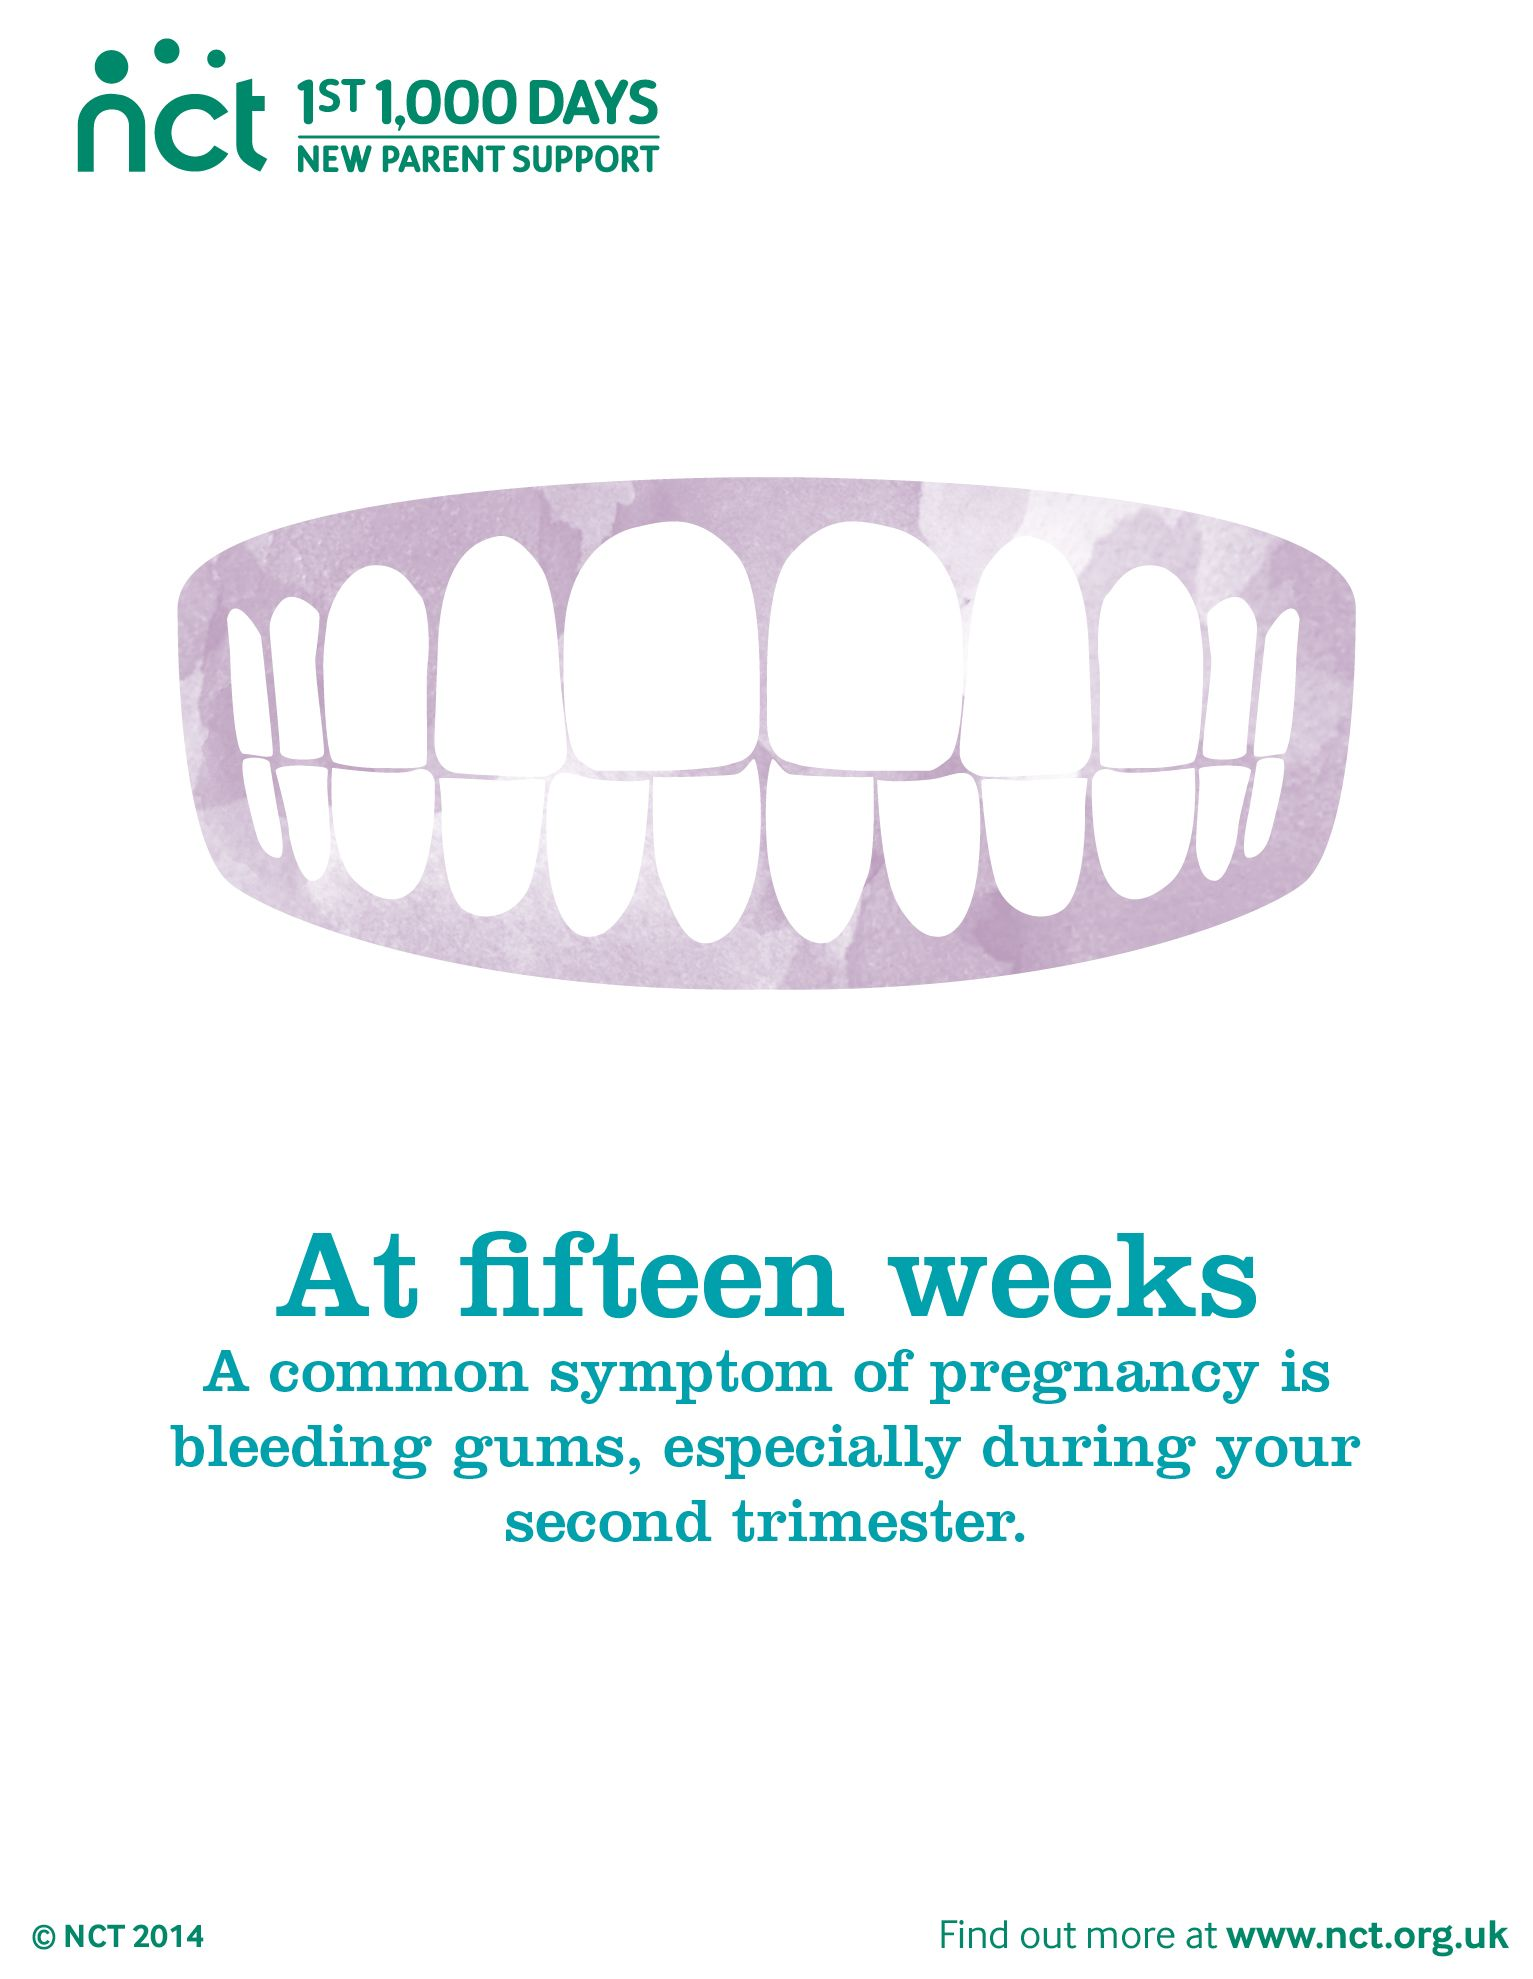 Pin on Second trimester